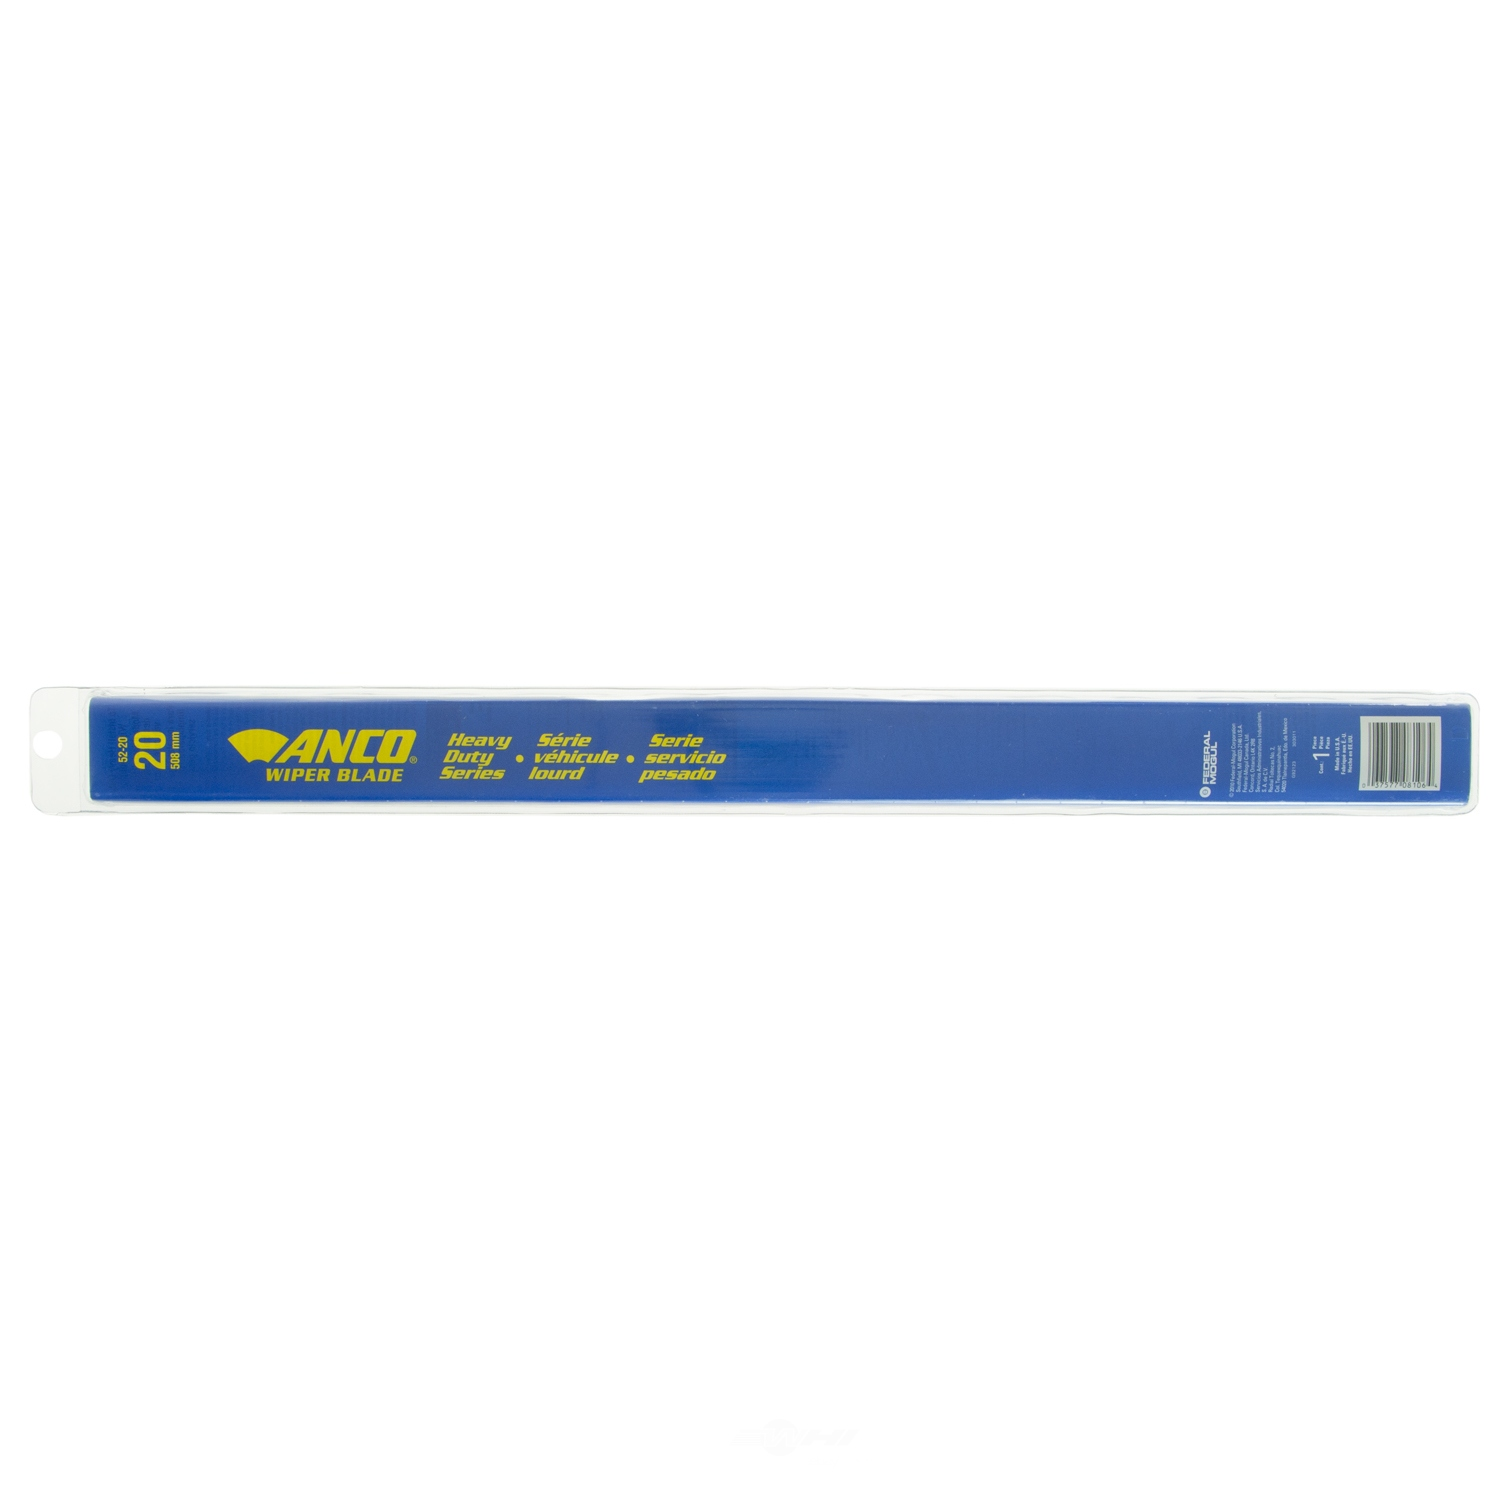 ANCO WIPER PRODUCTS - Clear-Flex Wiper Blade (Front) - ANC 52-20